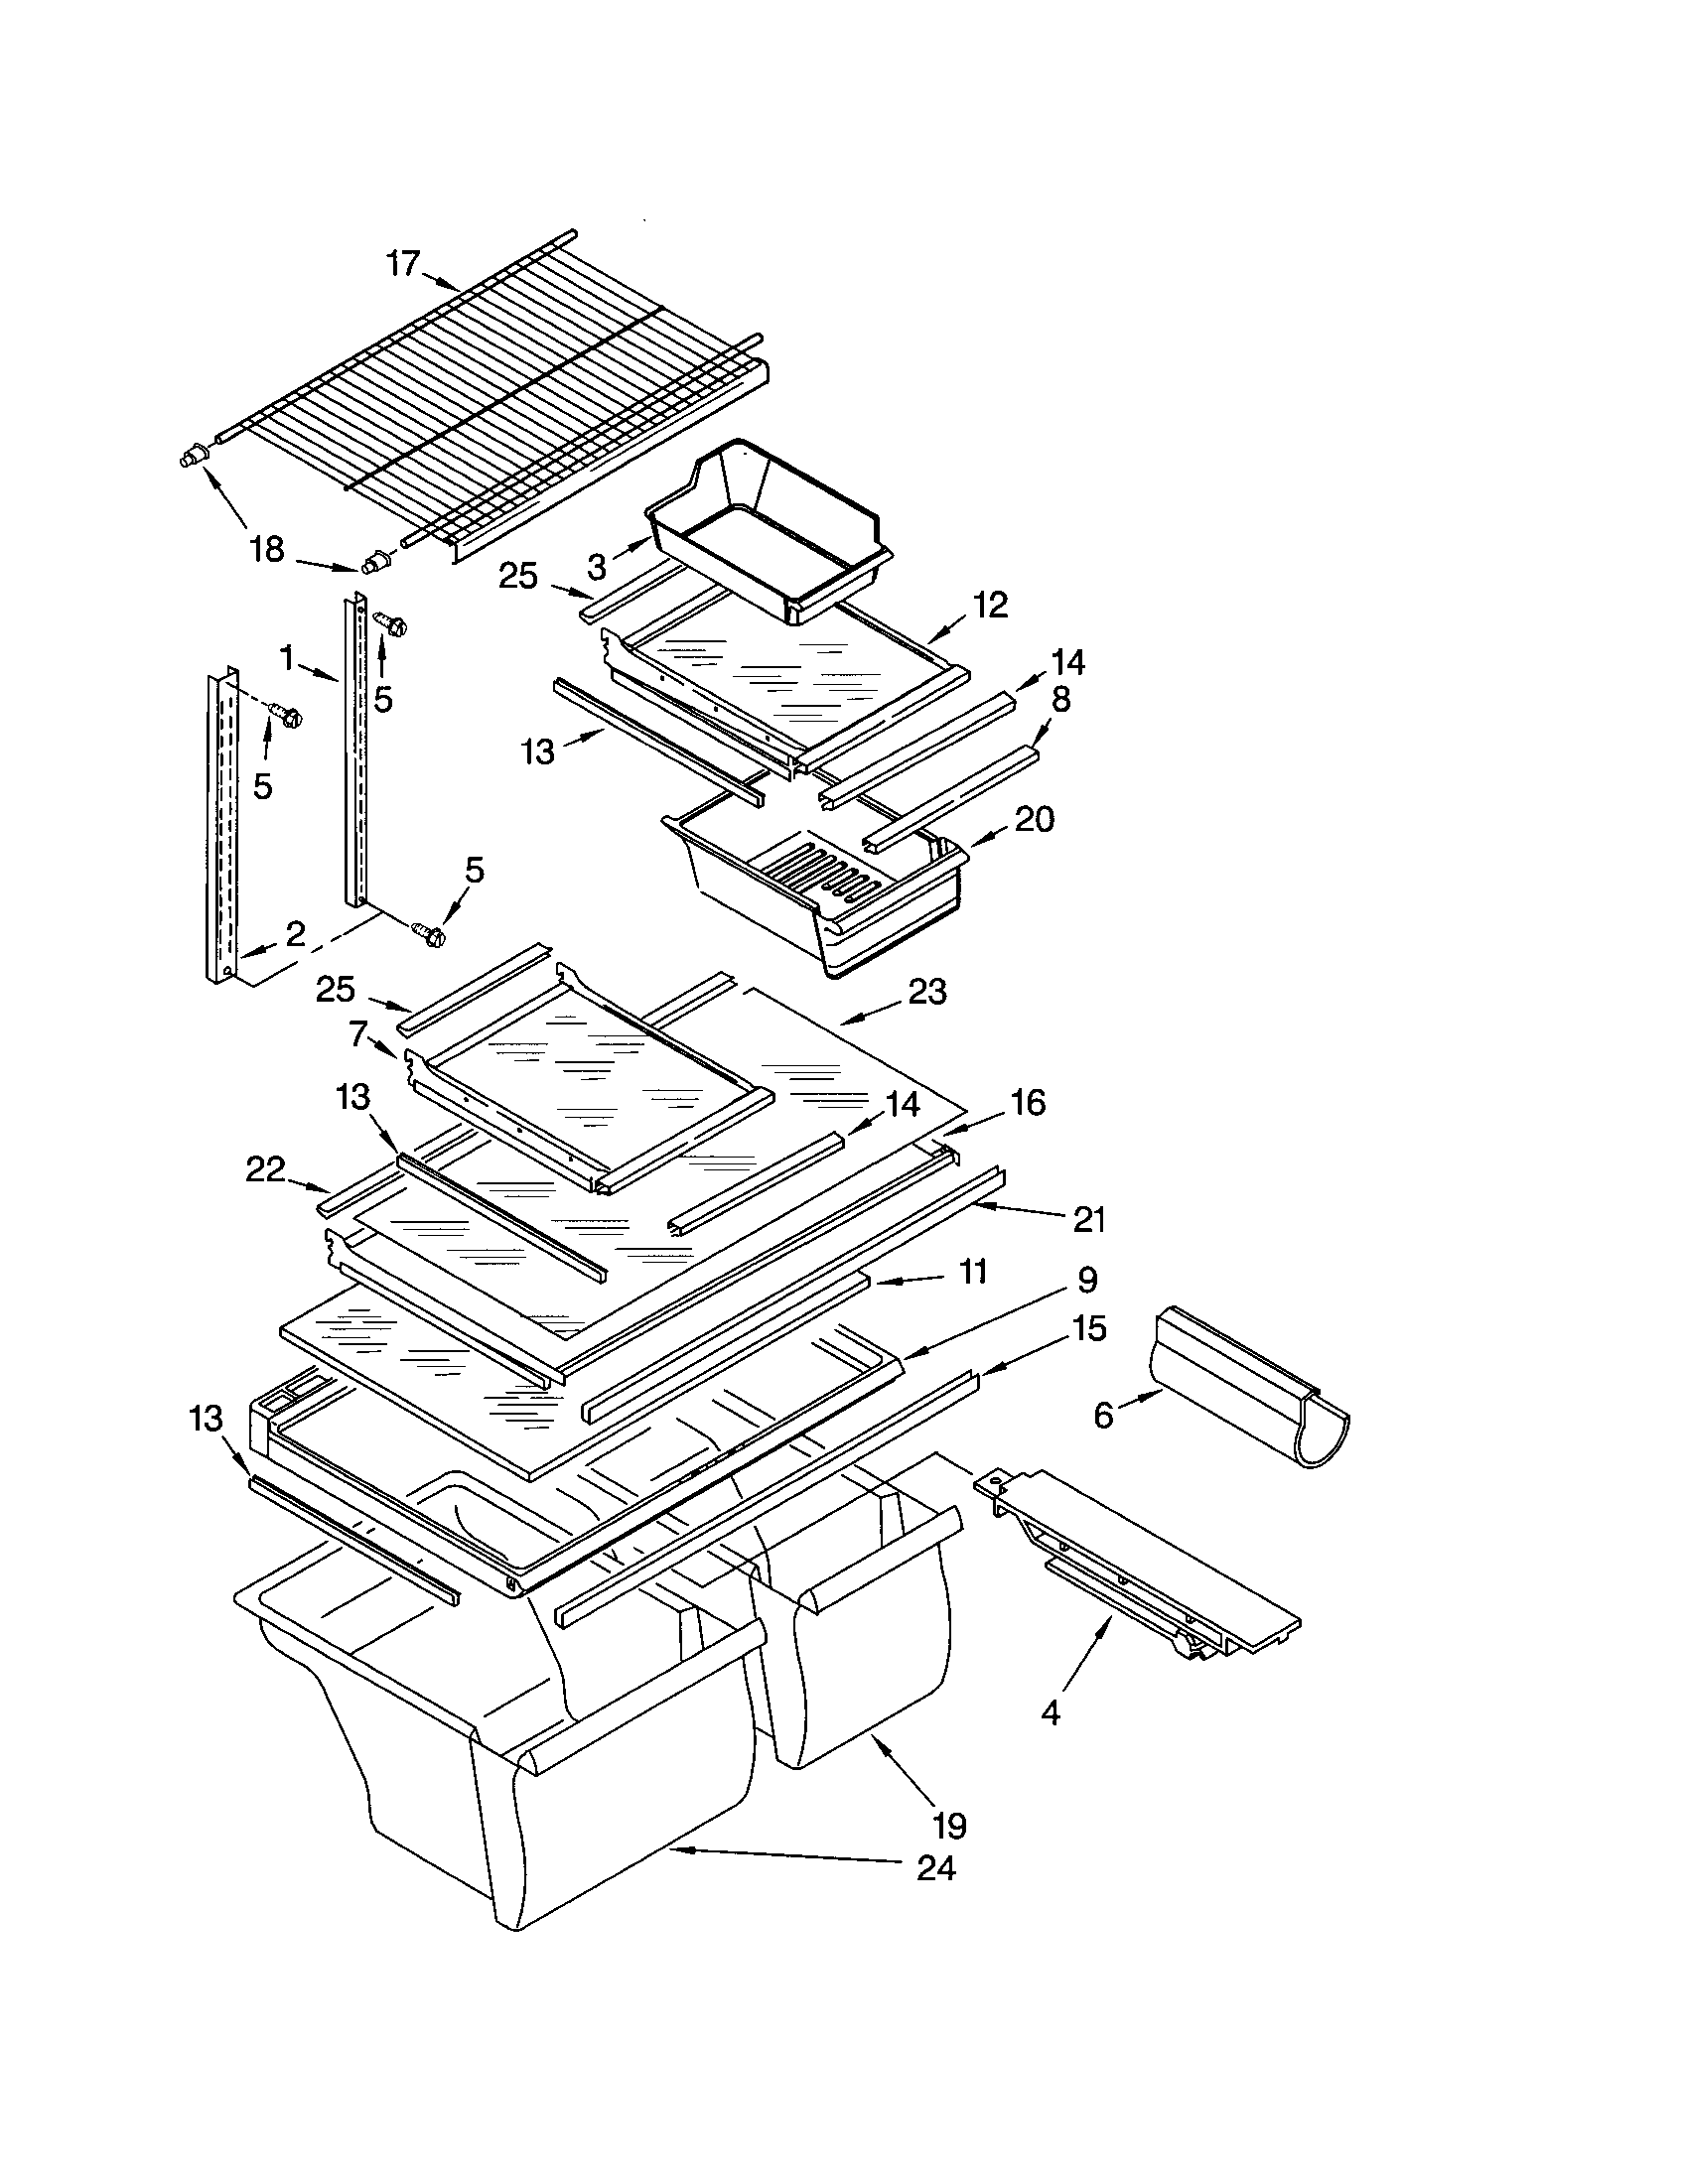 SHELF Diagram & Parts List for Model 10670842100 Kenmore